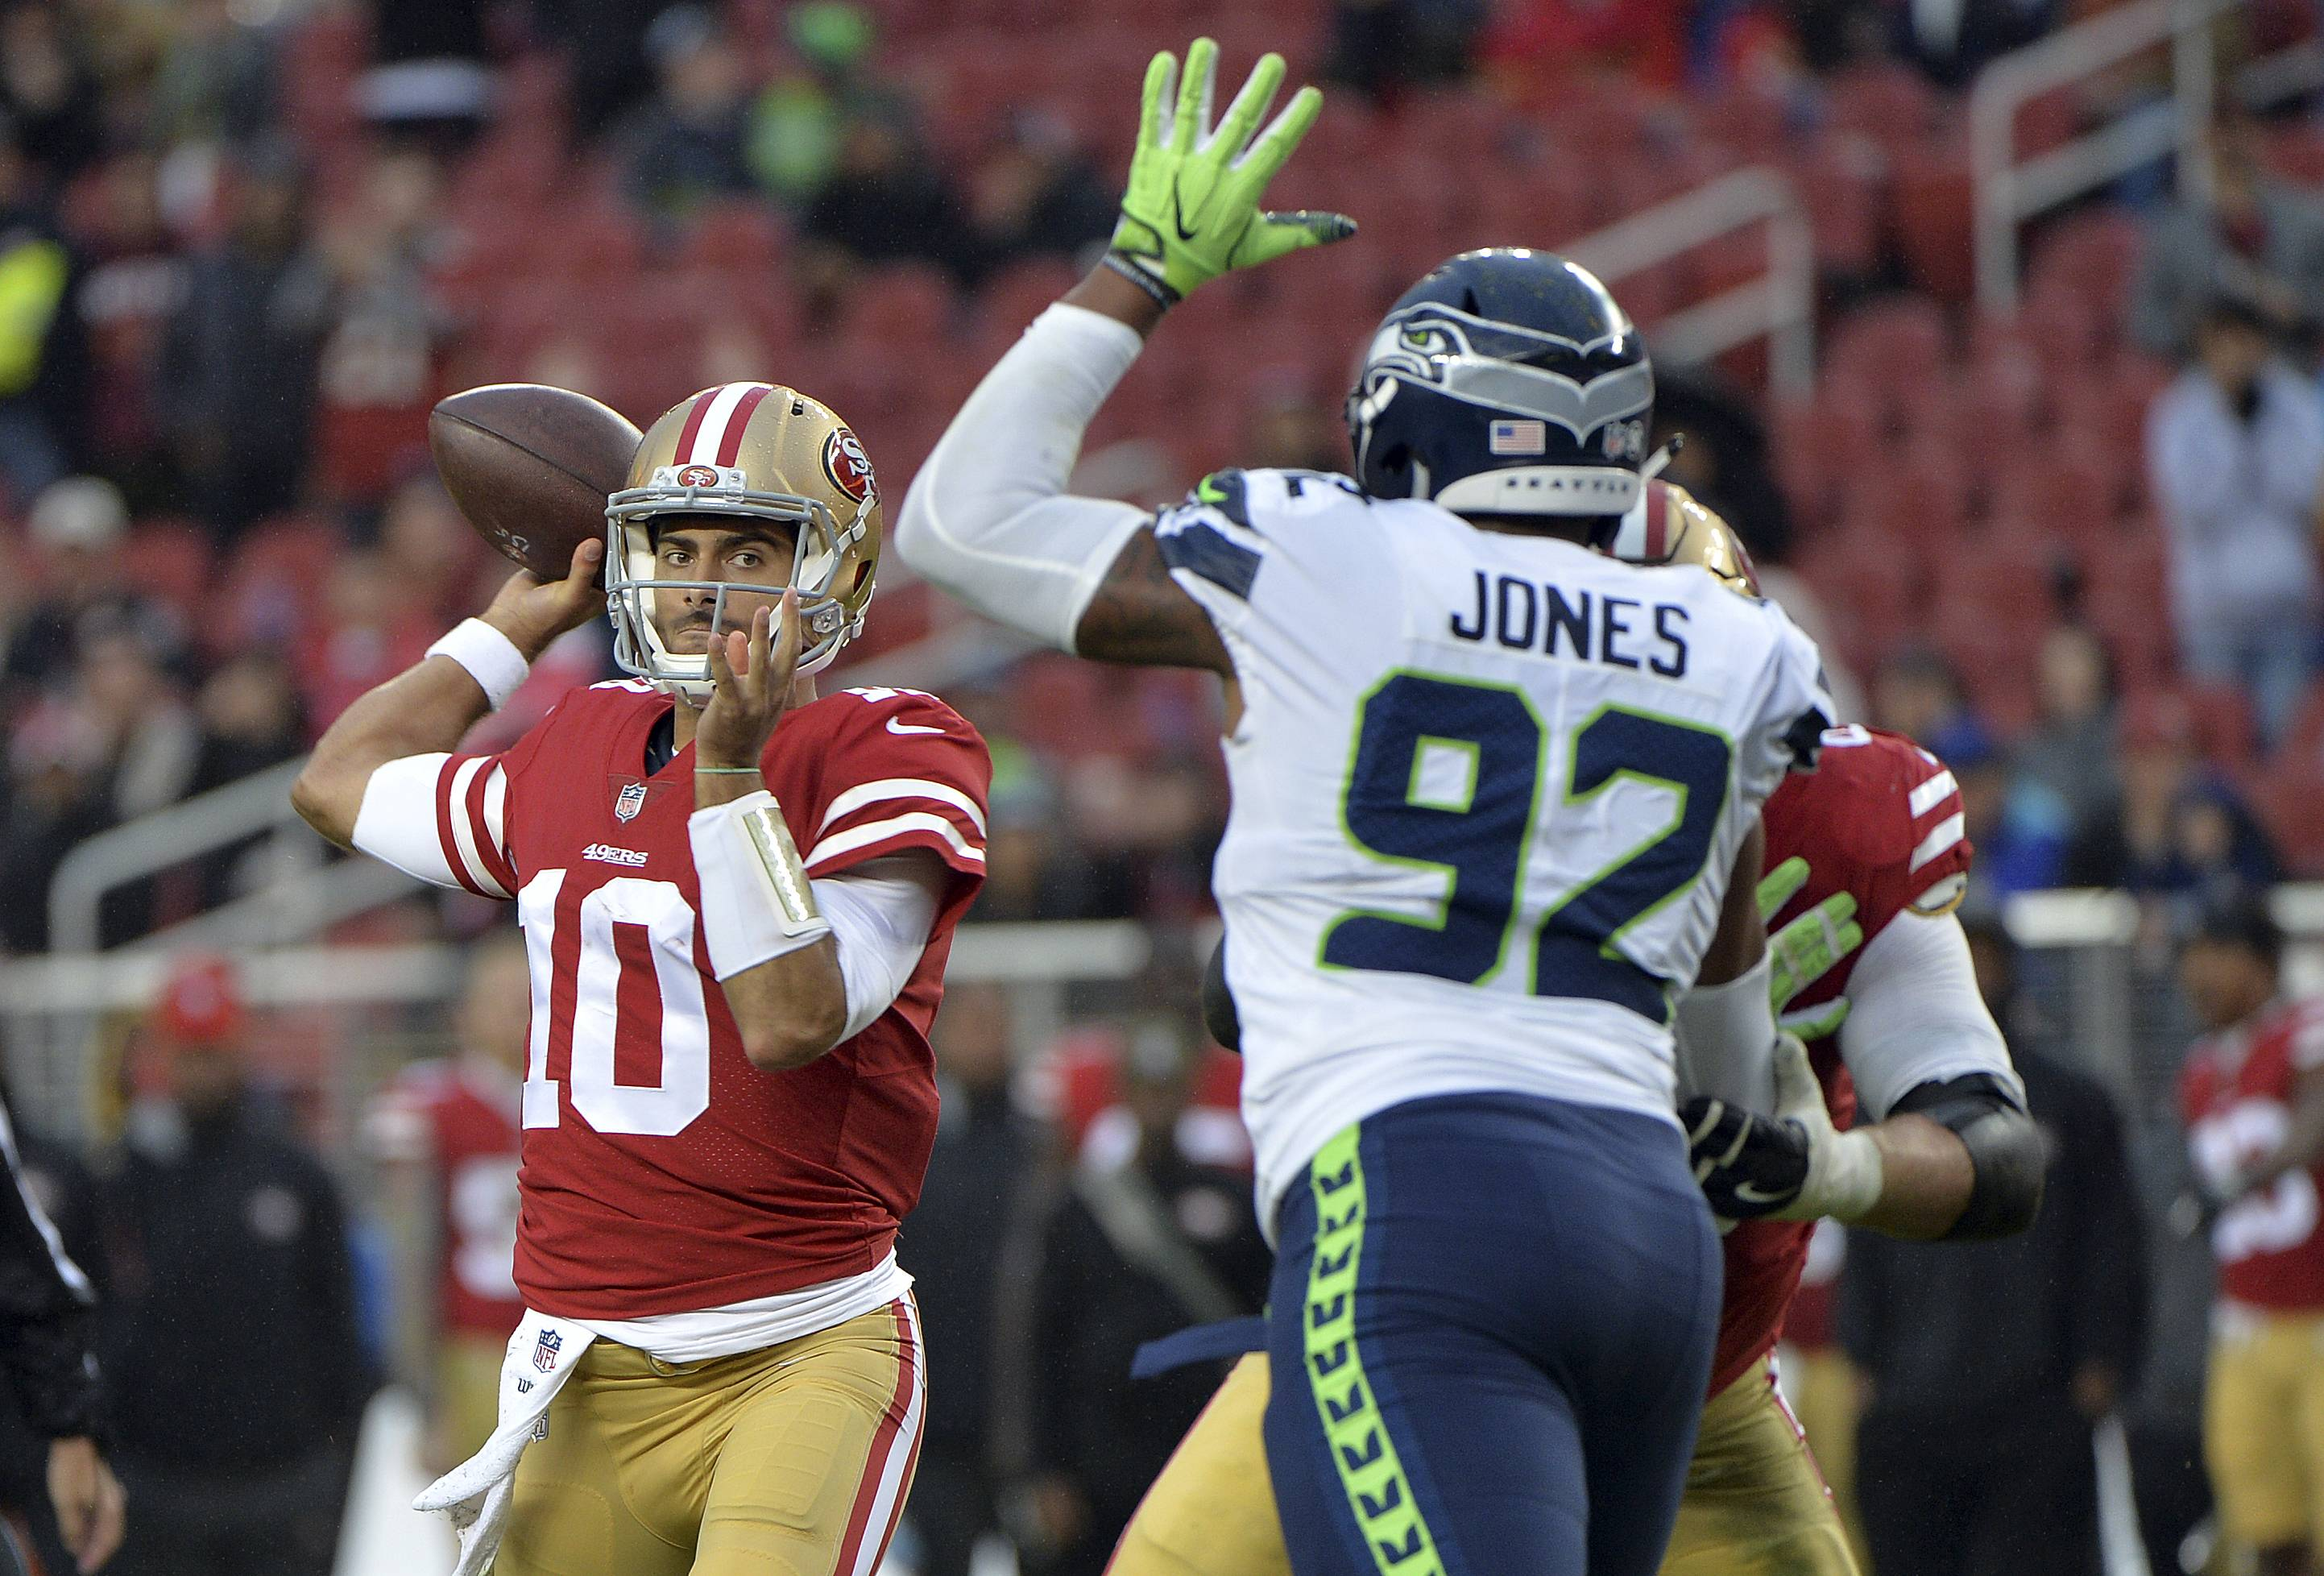 San Francisco 49ers quarterback Jimmy Garoppolo (10) throws against the Seattle Seahawks during the second half of an NFL football game Sunday, Nov. 26, 2017, in Santa Clara, Calif. (AP Photo/Don Feria)